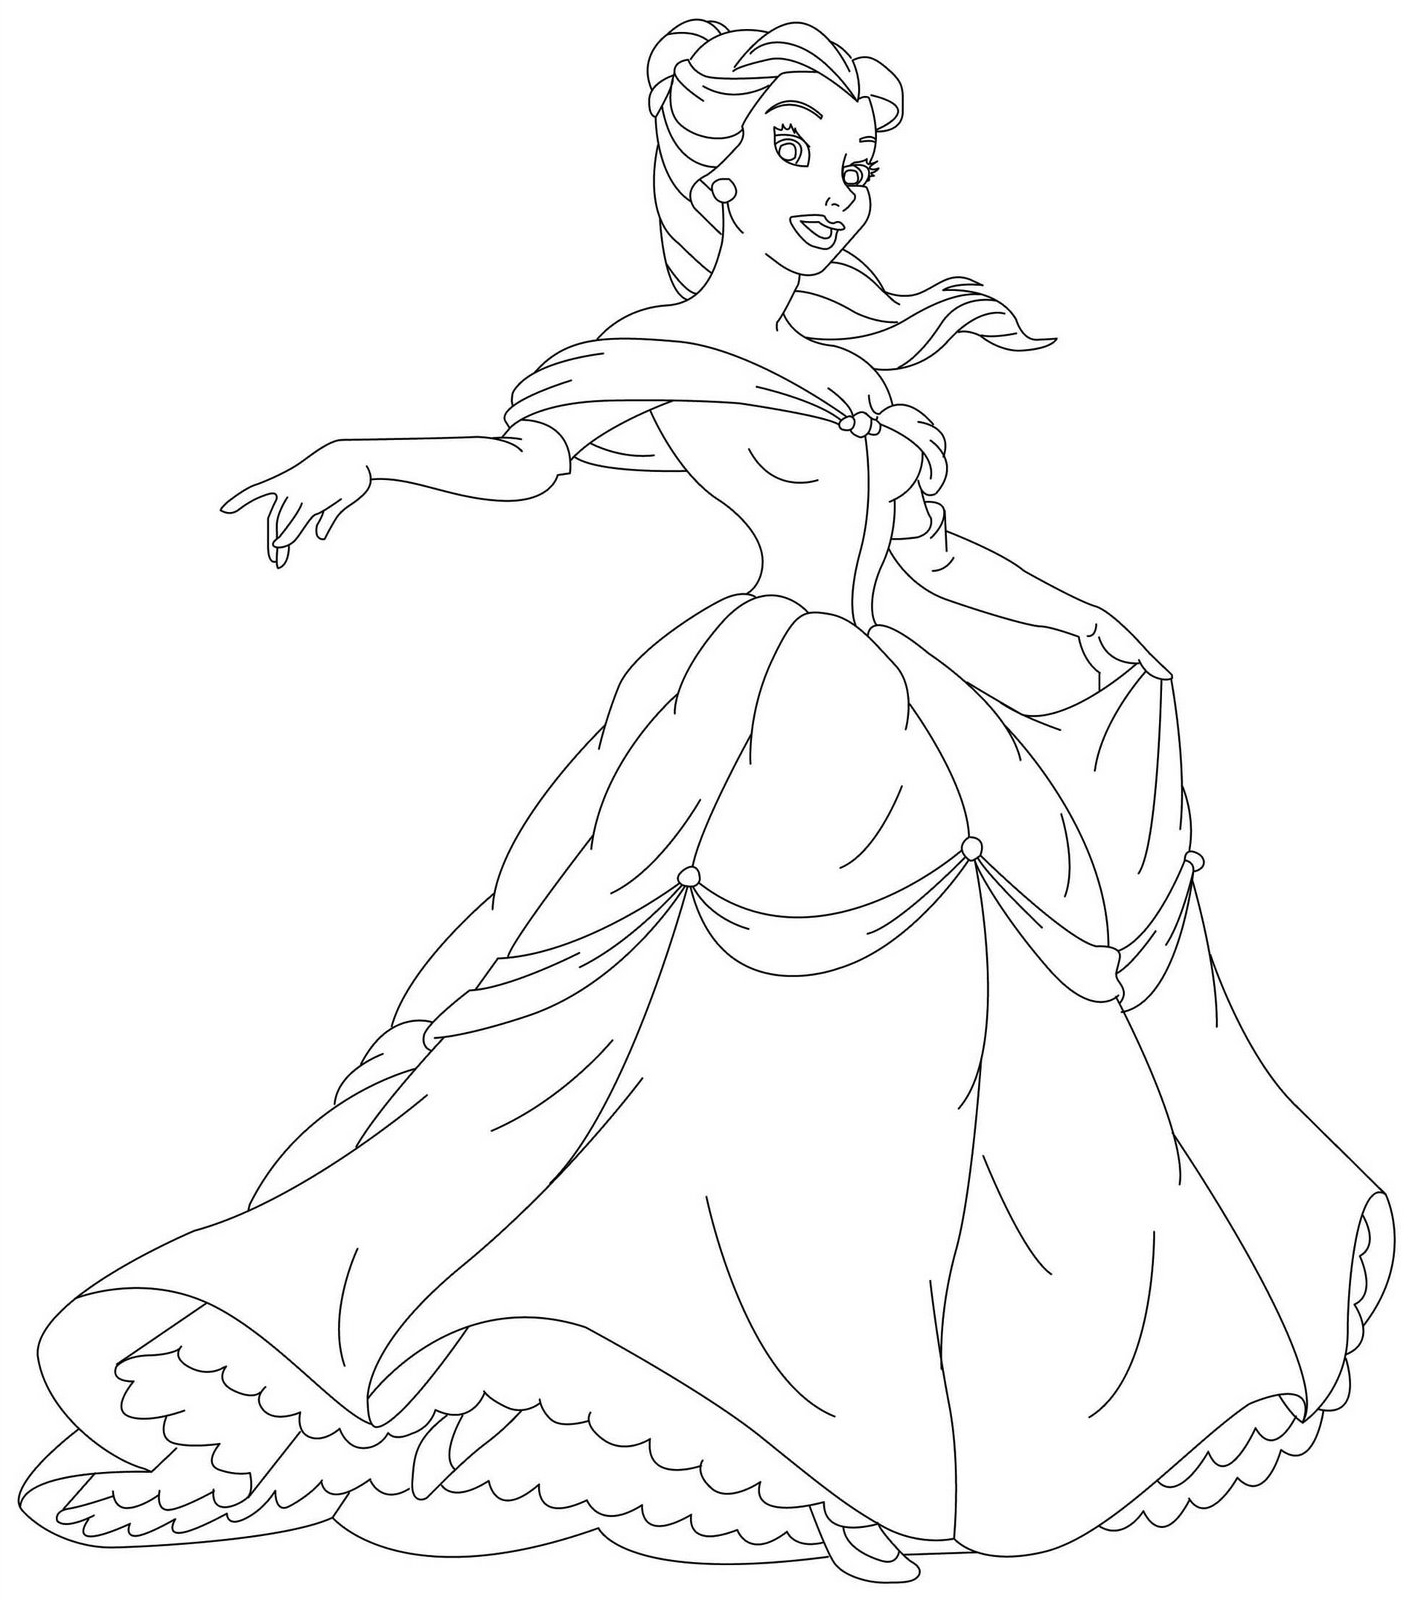 1418x1600 Free Printable Disney Princess Coloring Pages For Kids